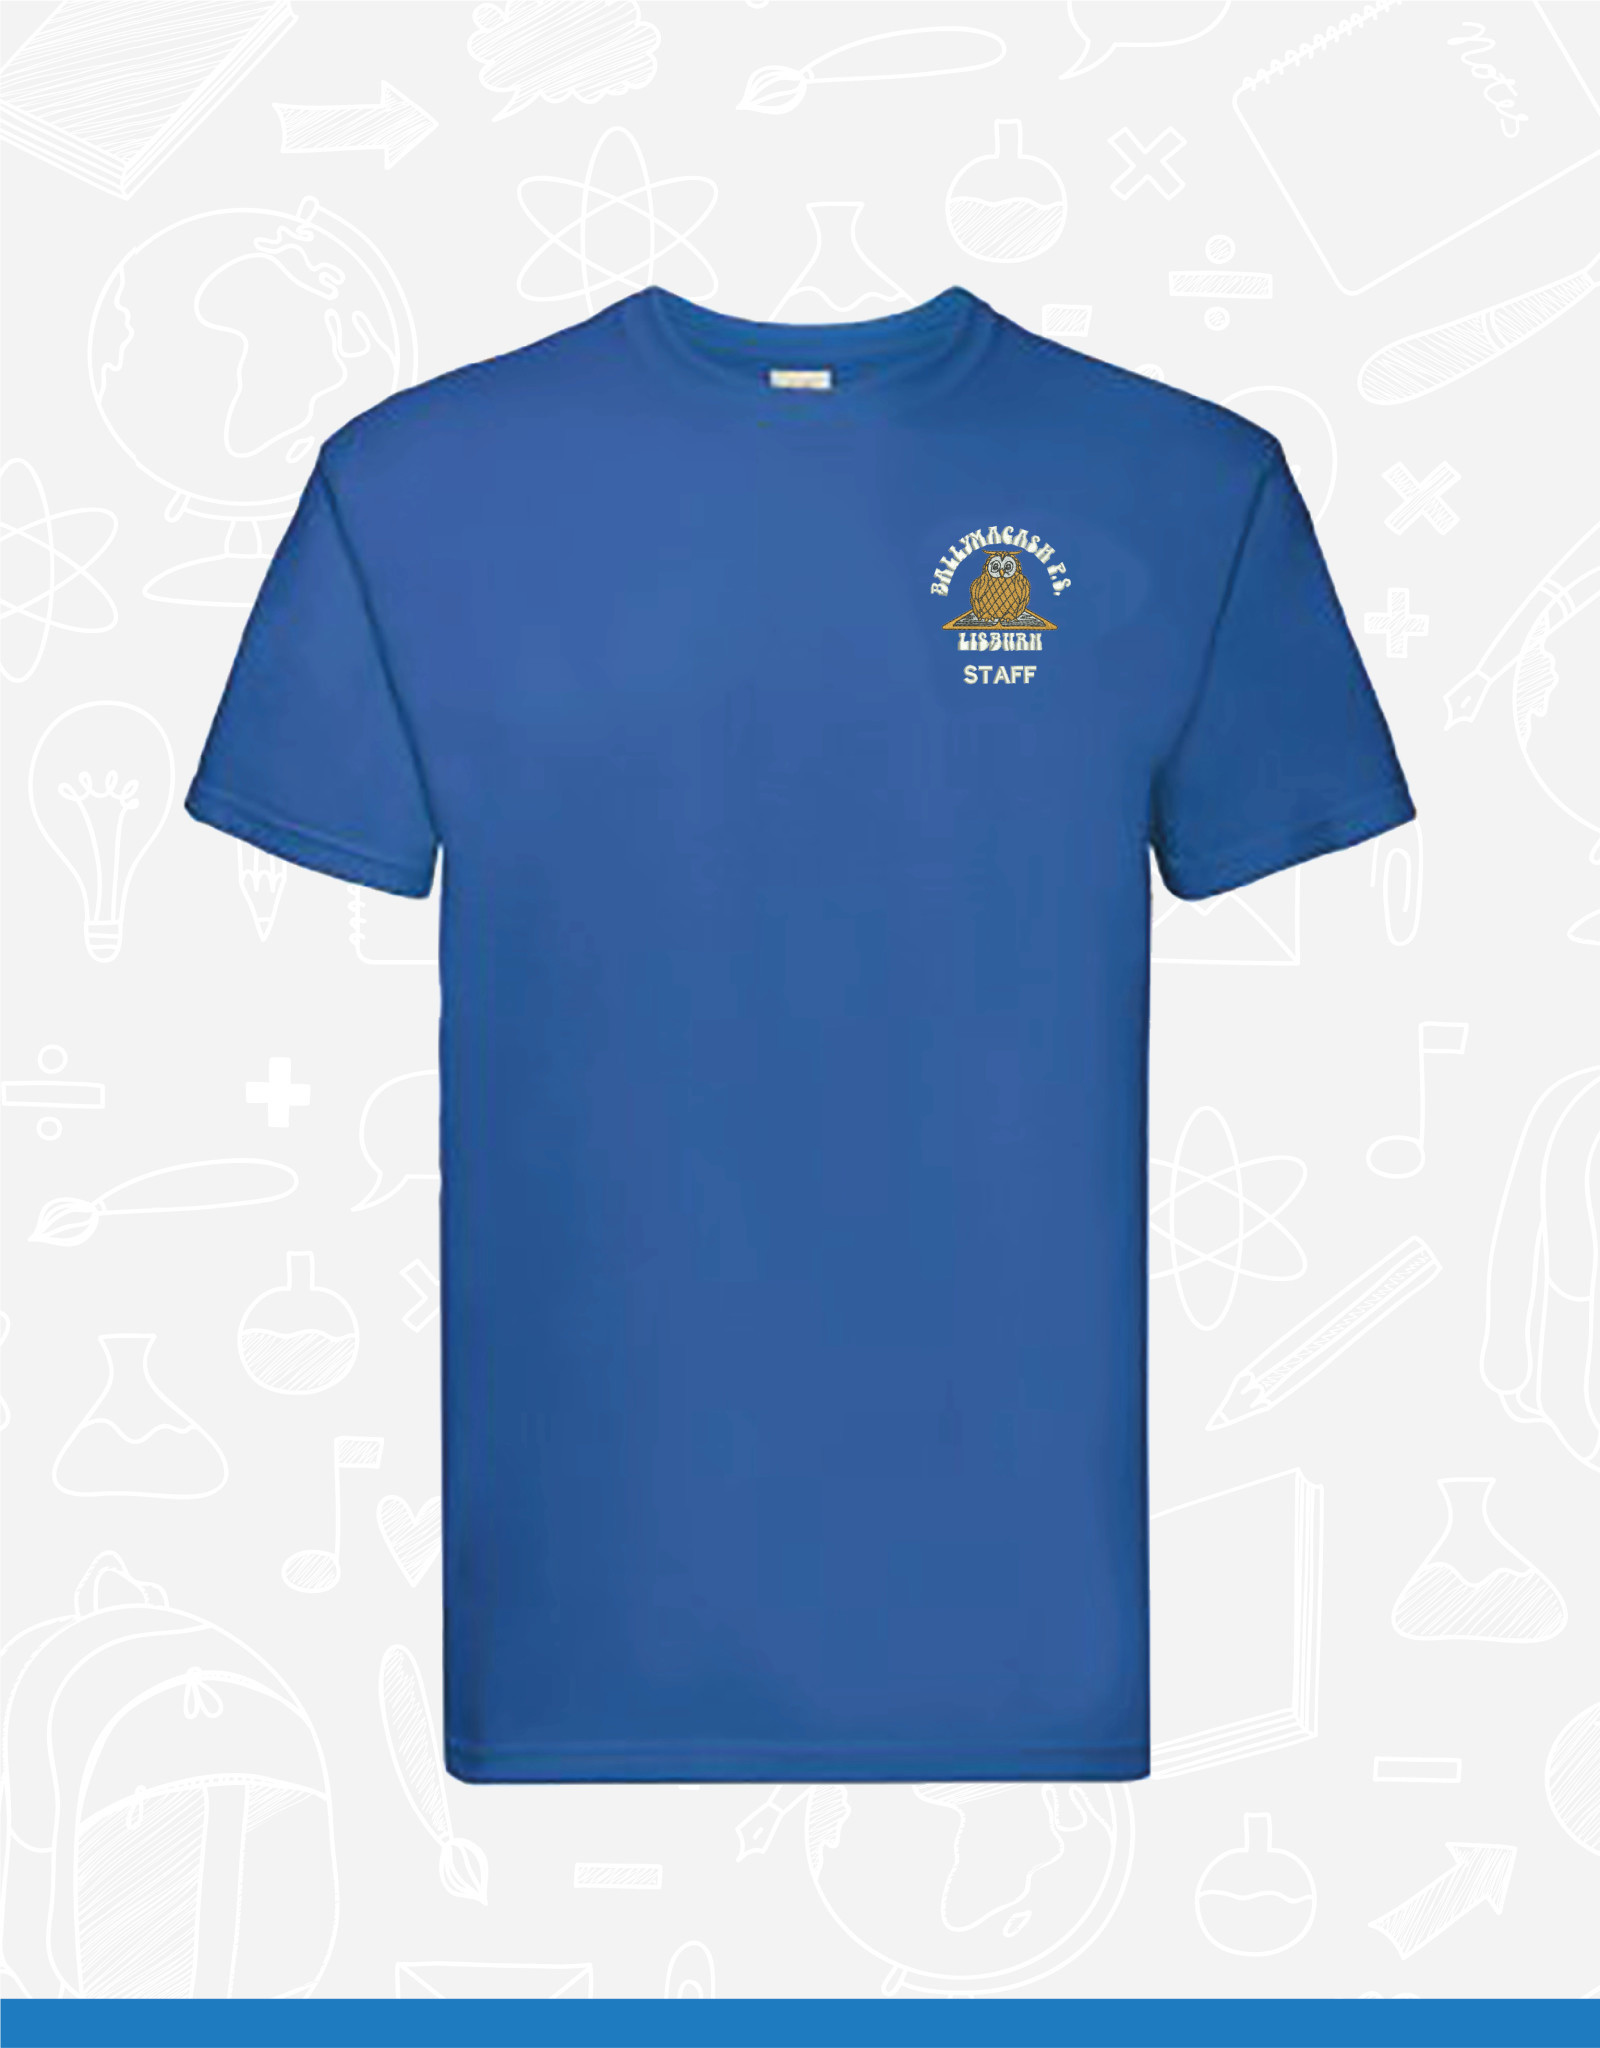 Fruit of the Loom Ballymacash Staff T-Shirt (SS10)